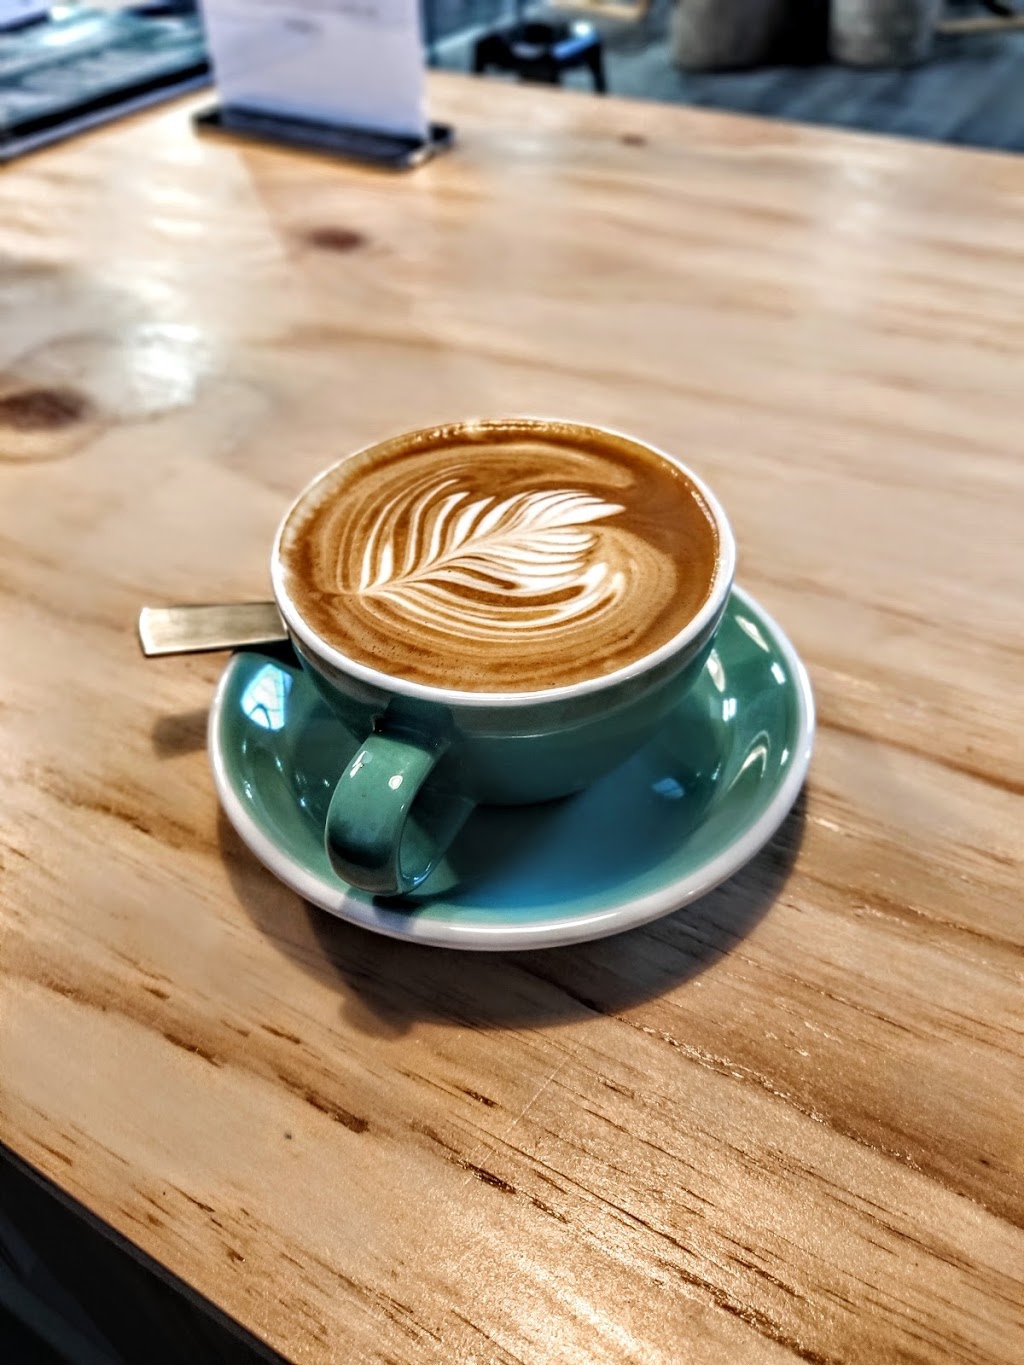 WithOneBean Coffee Shop & Roastery | cafe | 42 Regent St, Oakleigh VIC 3166, Australia | 0434270571 OR +61 434 270 571